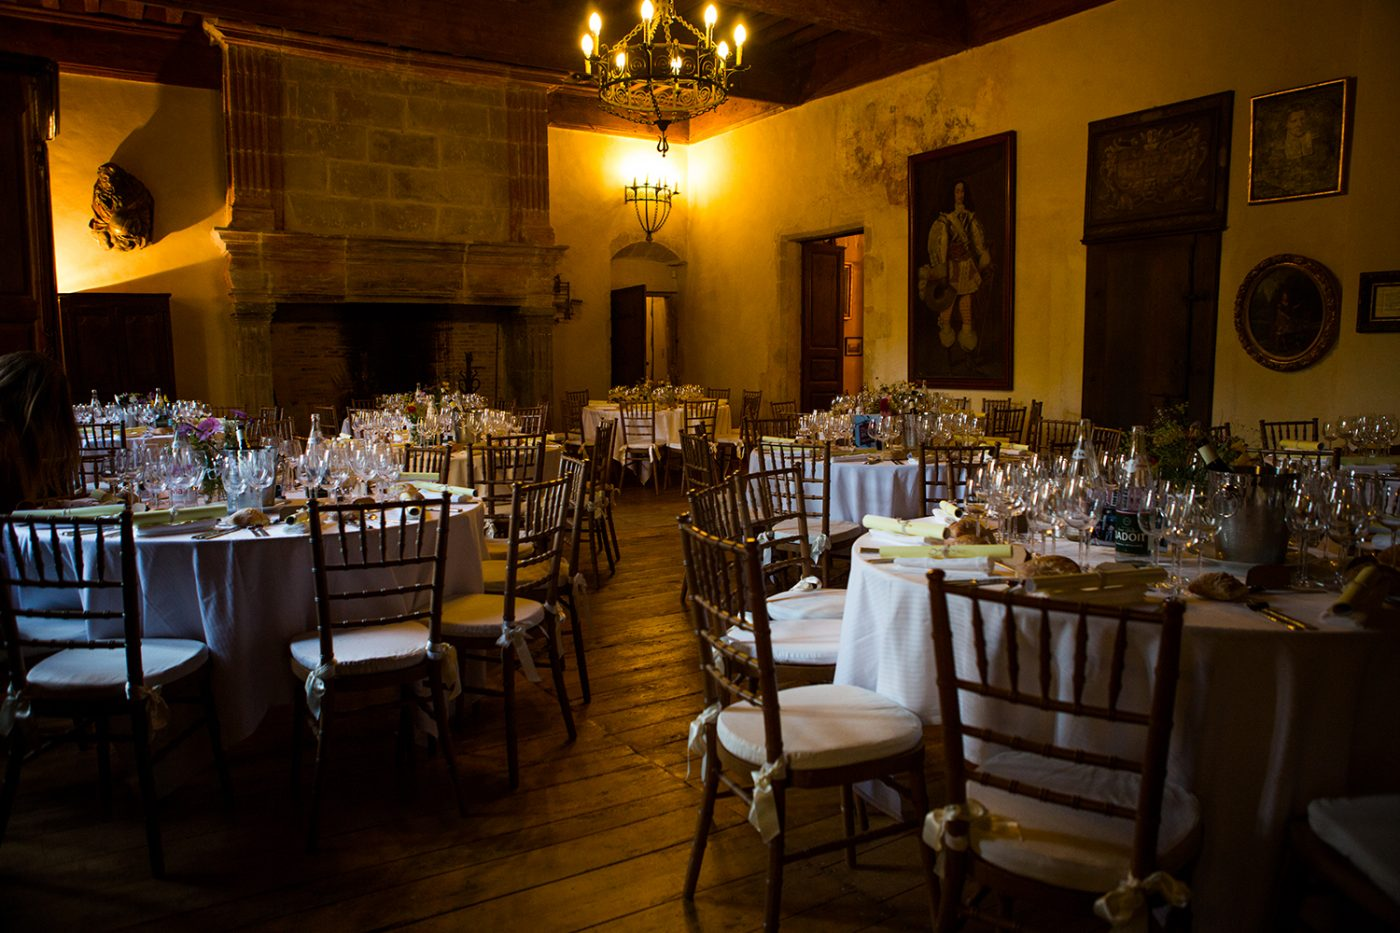 Reception Mariage Salle des Chevaliers / Wedding reception Knights' Hall